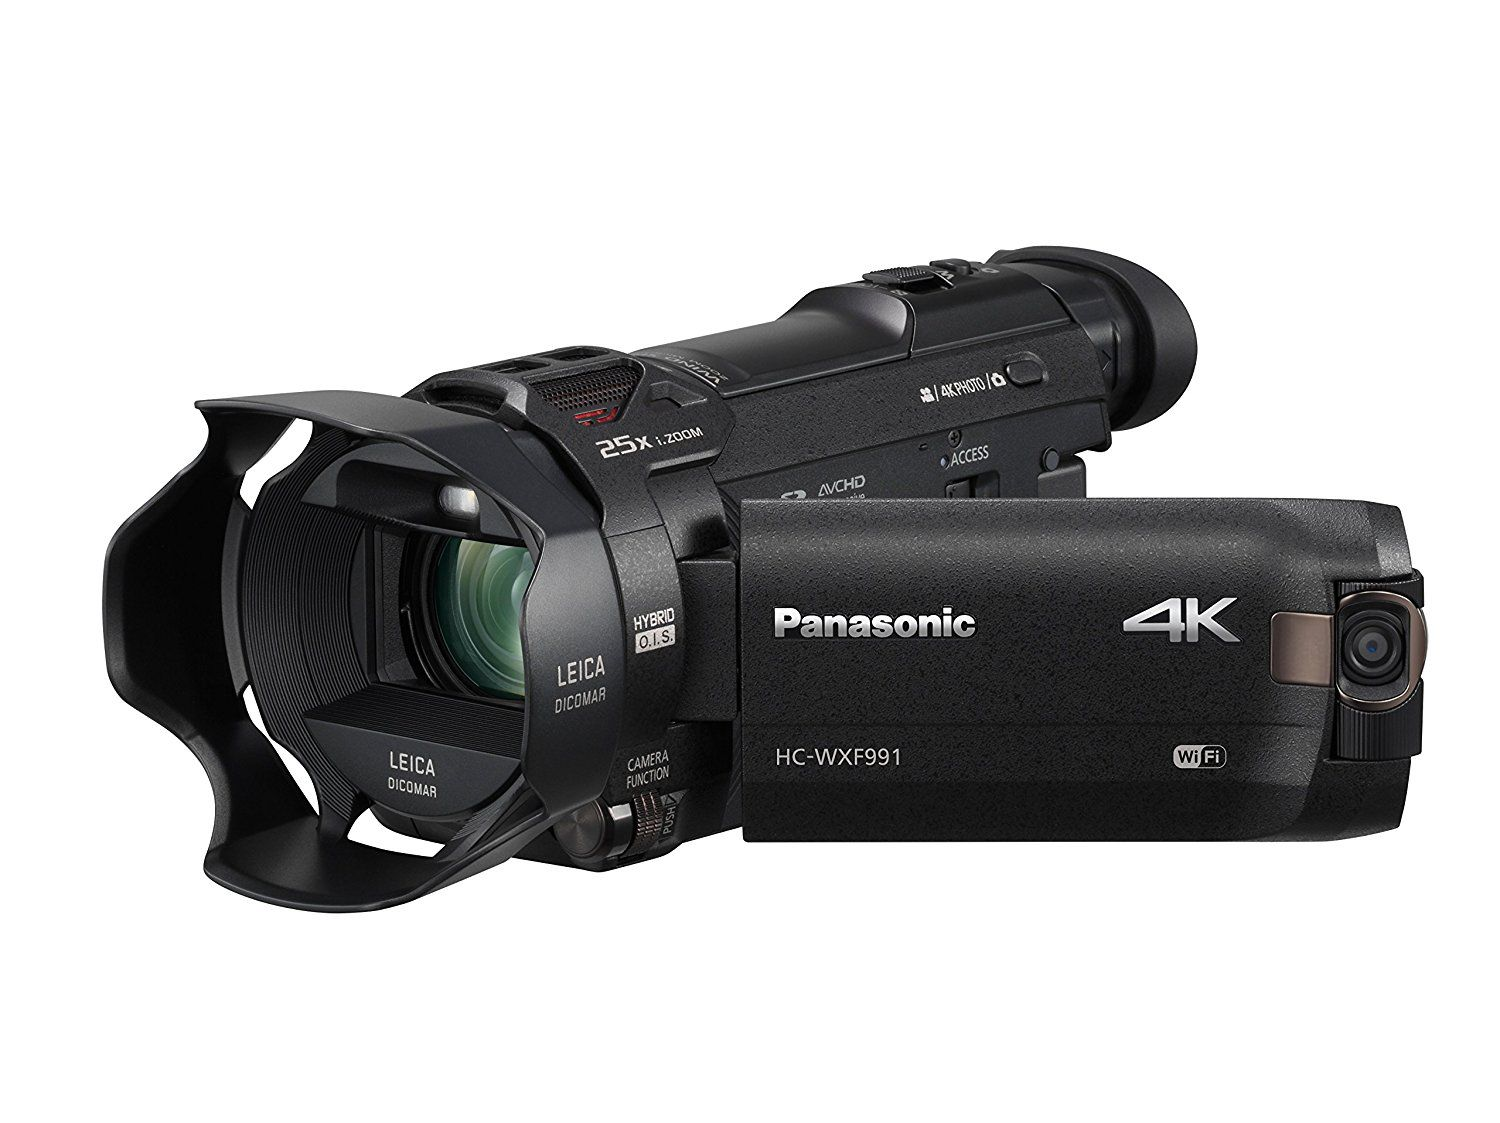 Best Camcorders 2019 The 8 Best Video Cameras of 2019